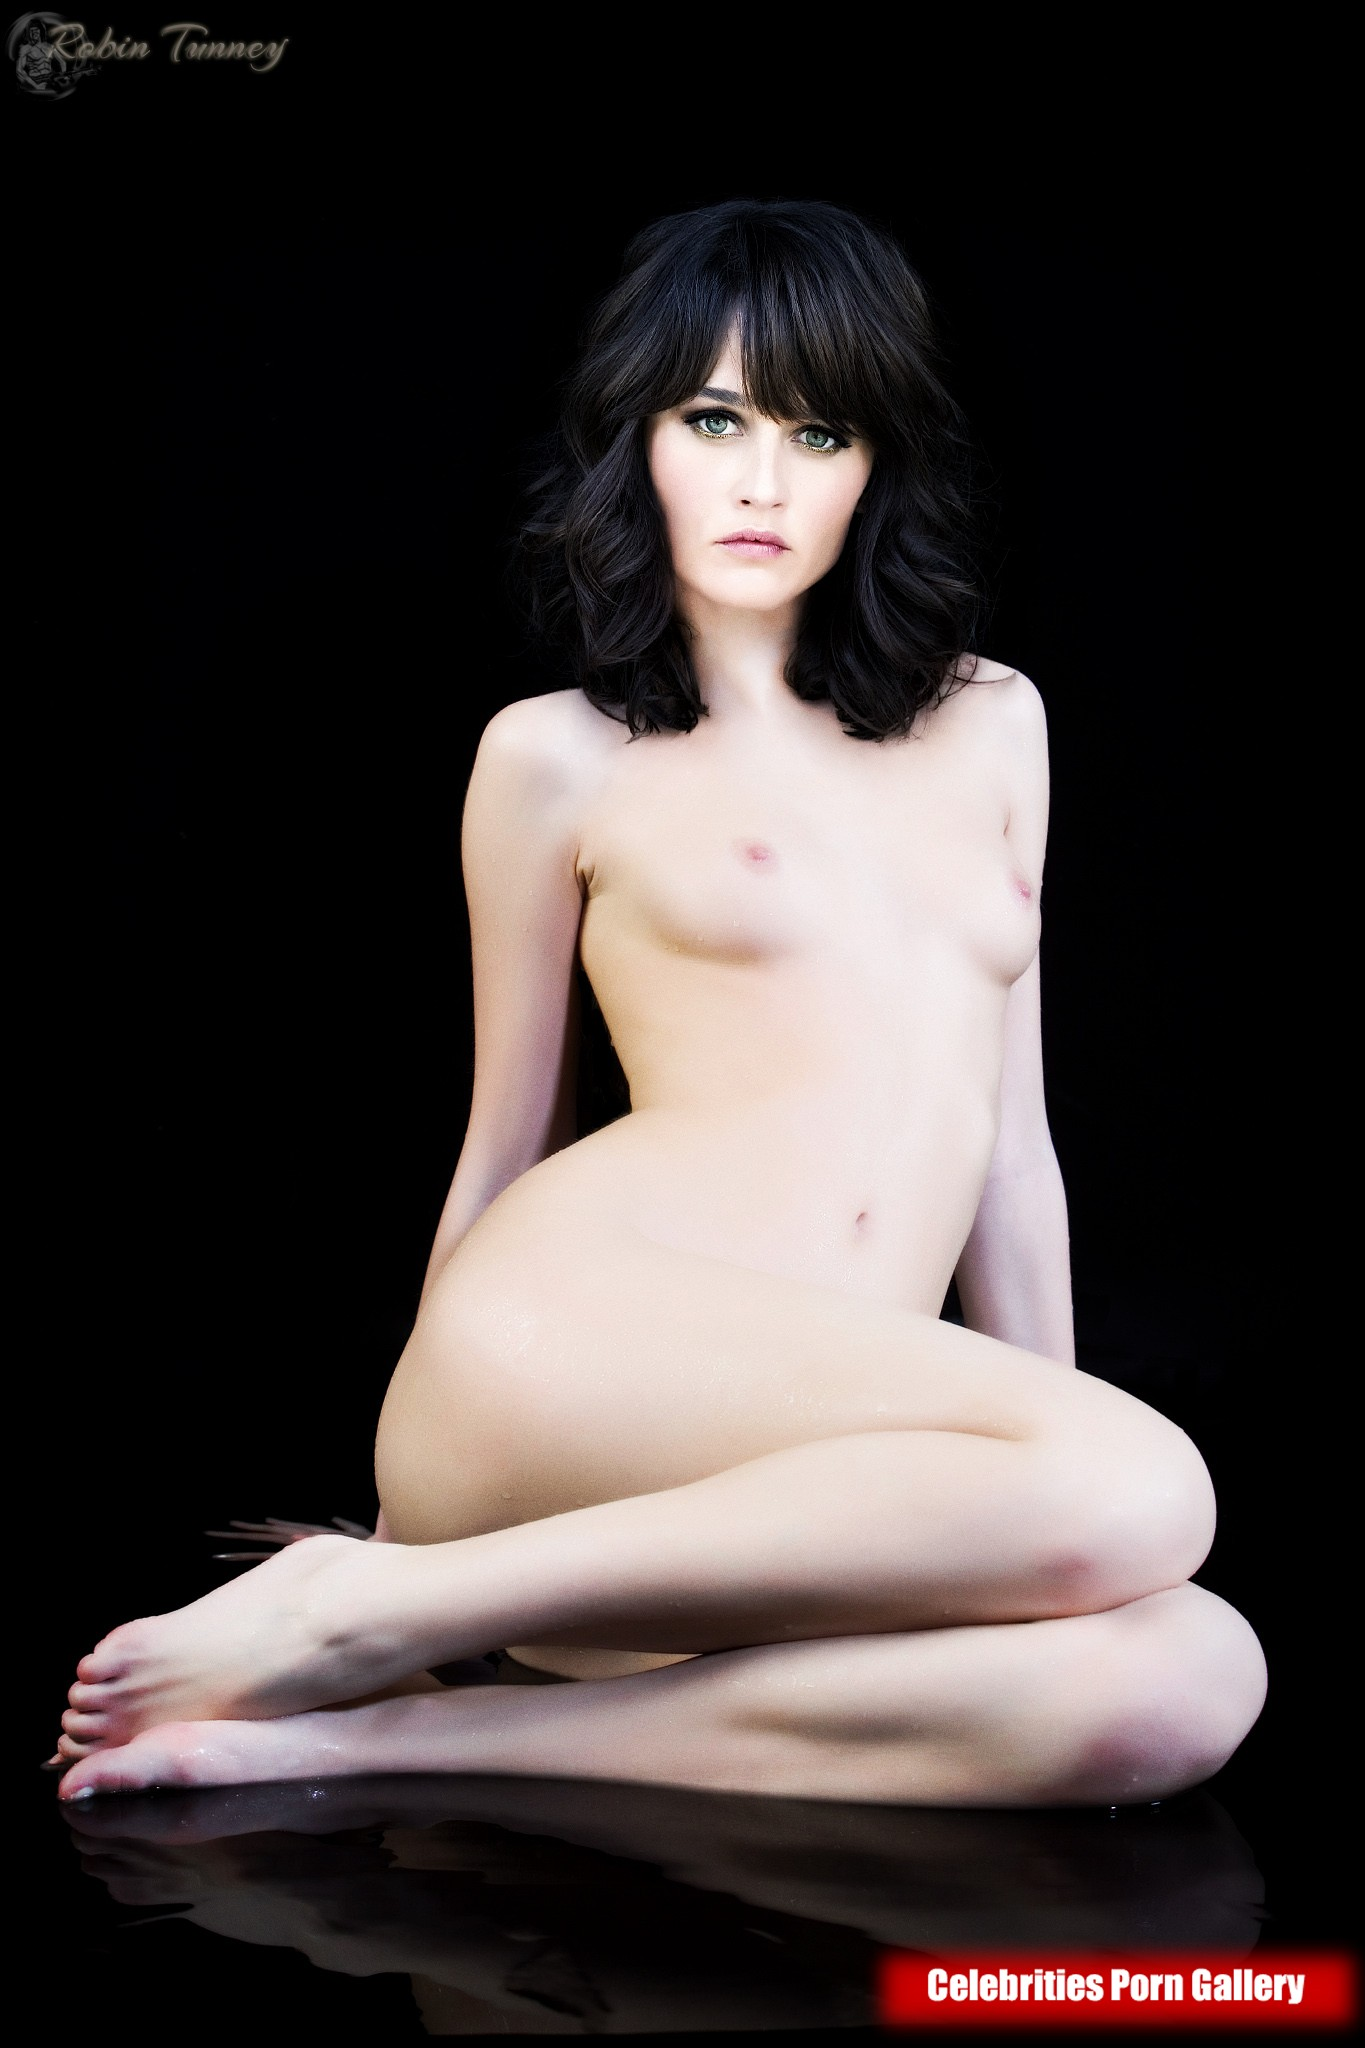 Free naked celebrity pictures